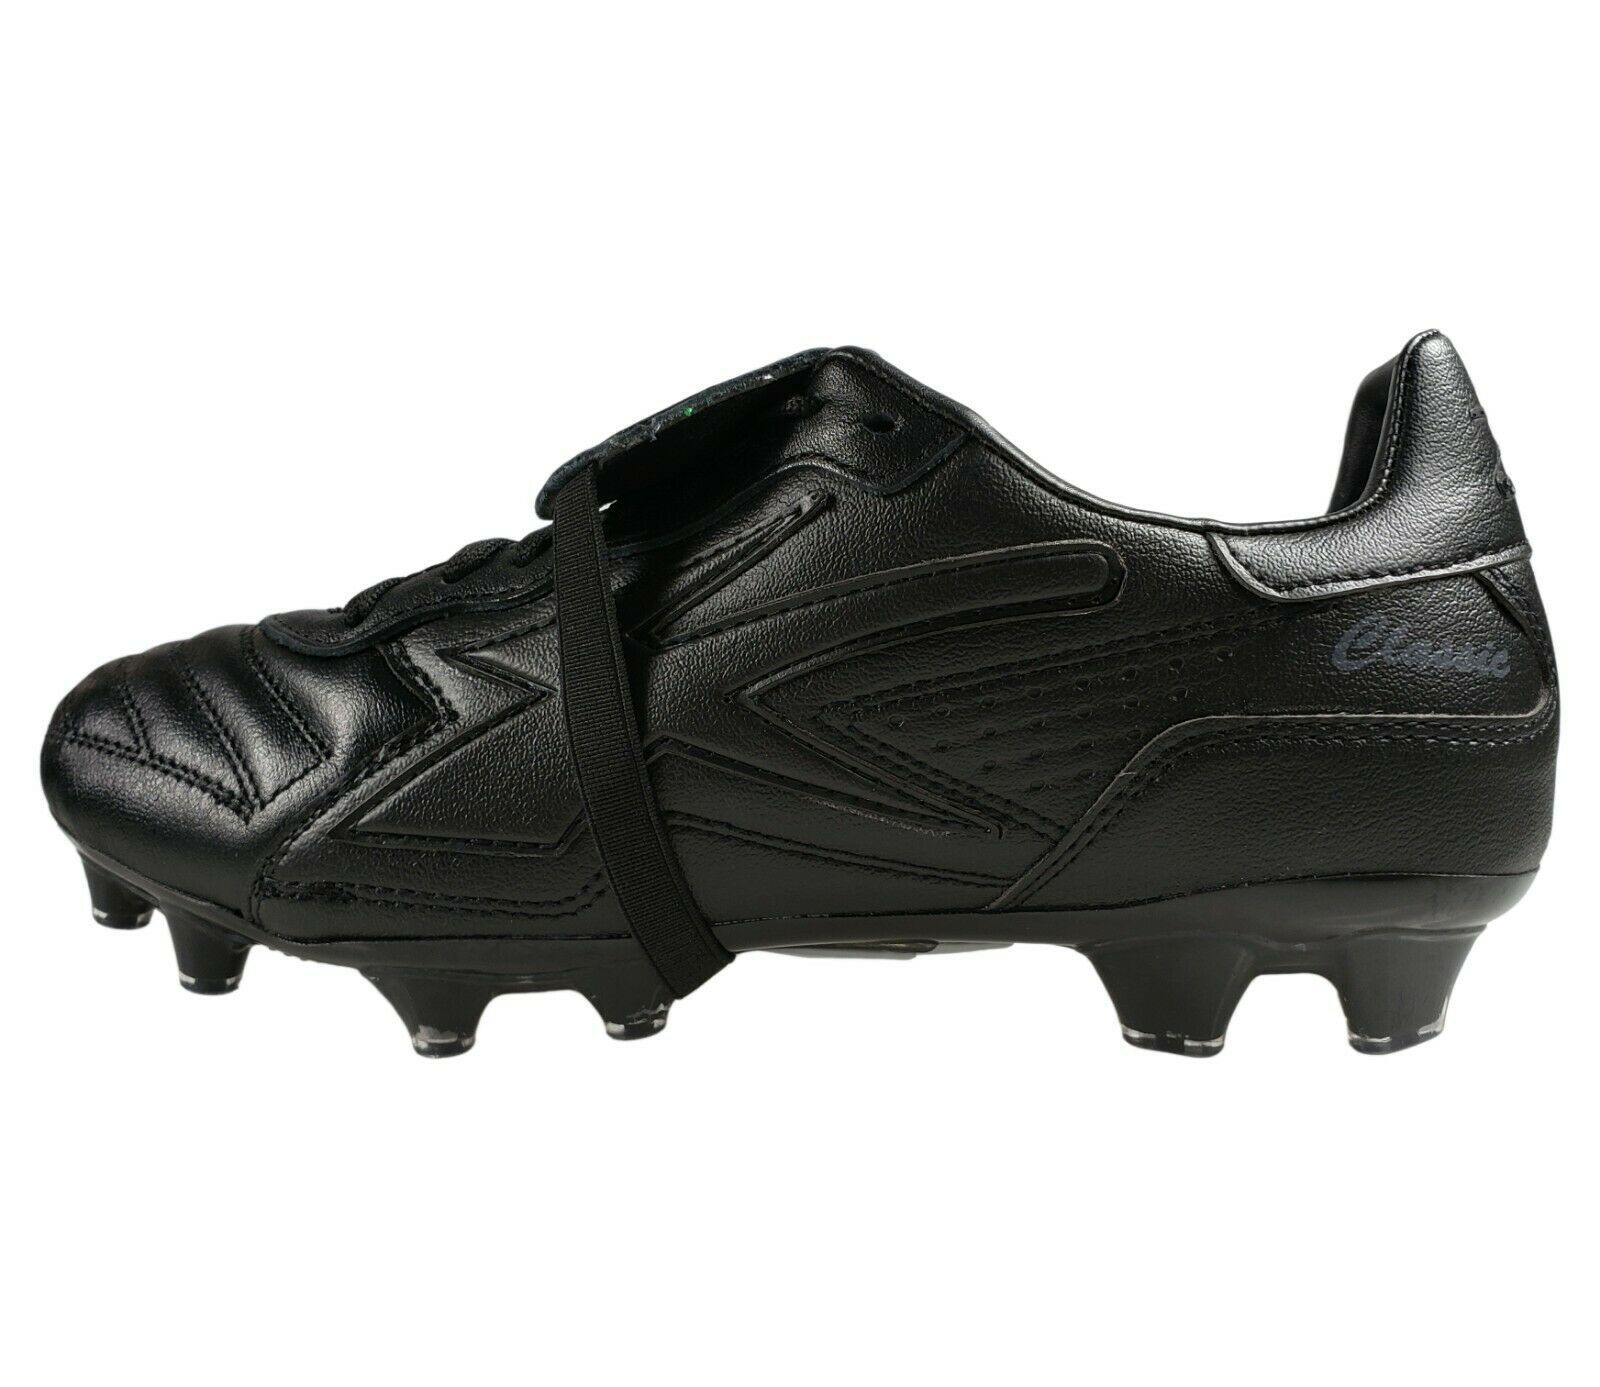 6954bfce35b Men s Professional Soccer Cleats Concord and 50 similar items